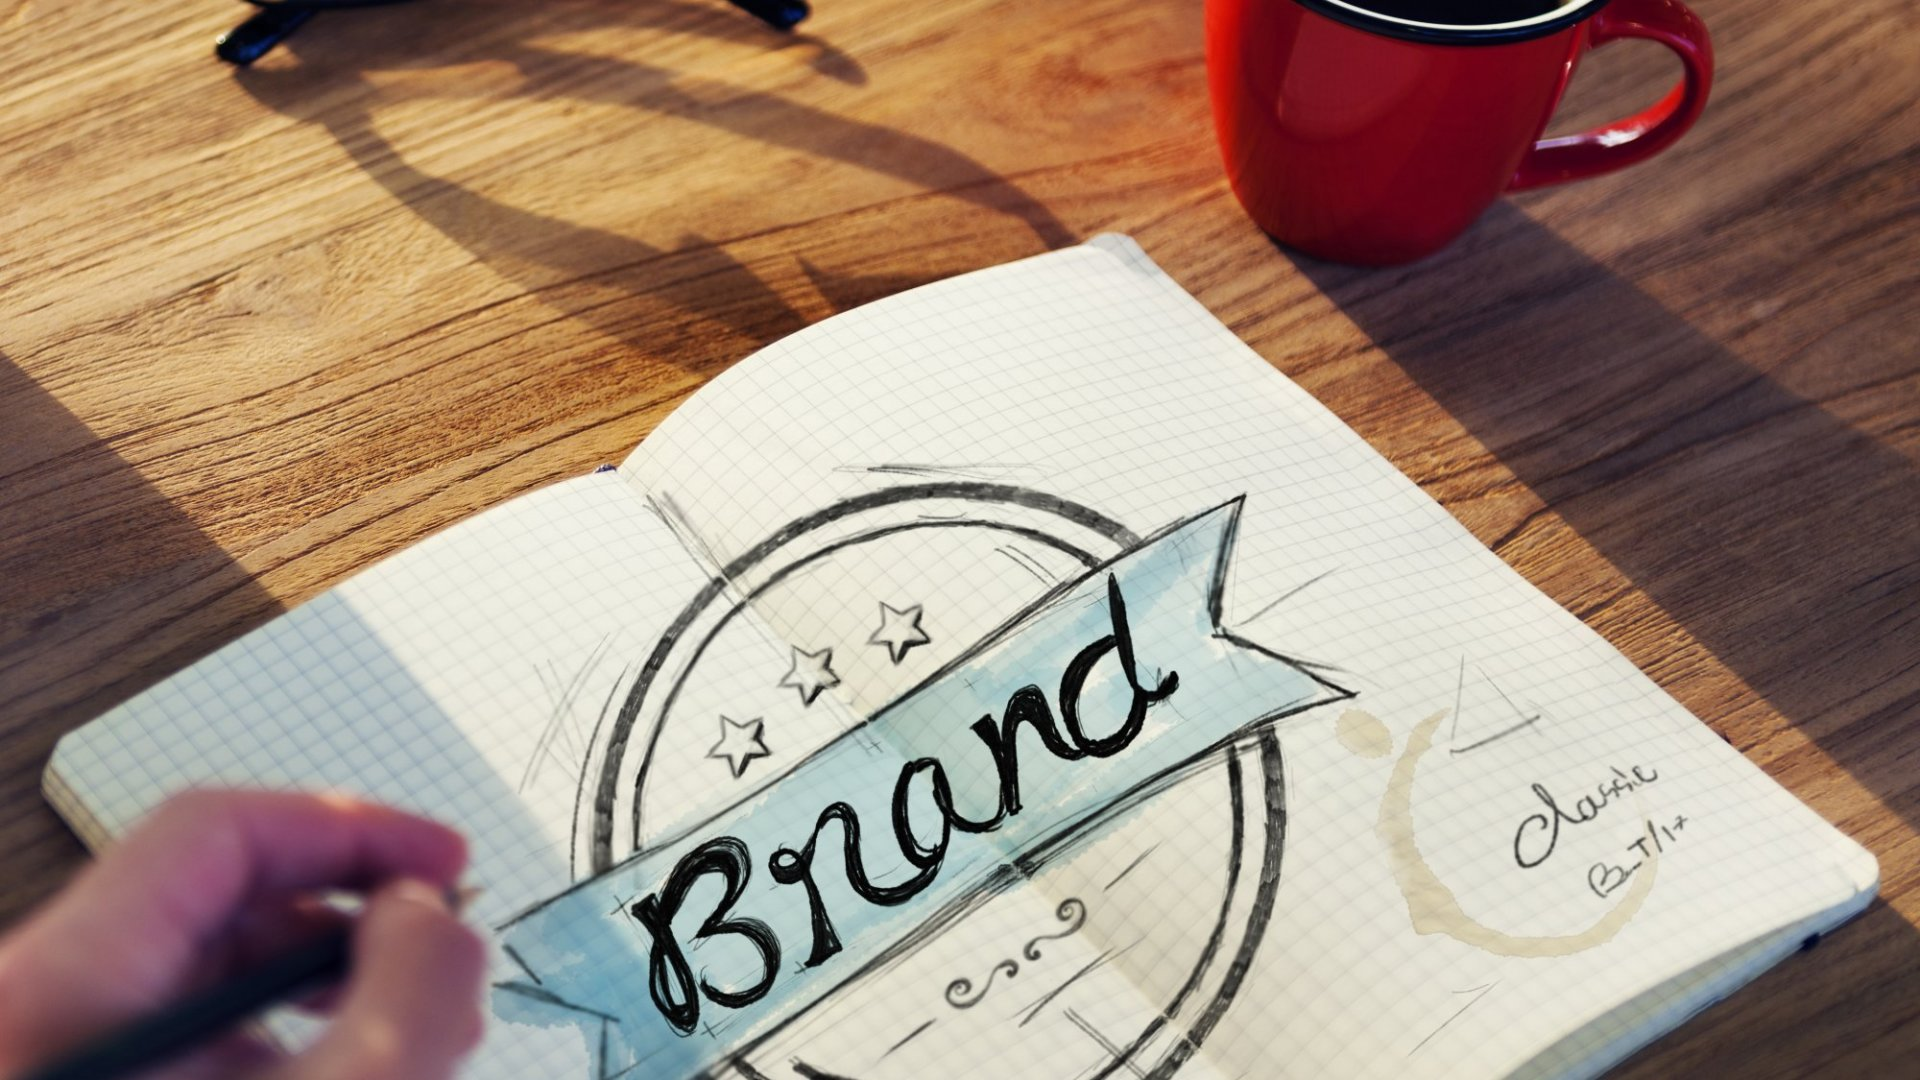 3 Pillars to Help Build Your Brand